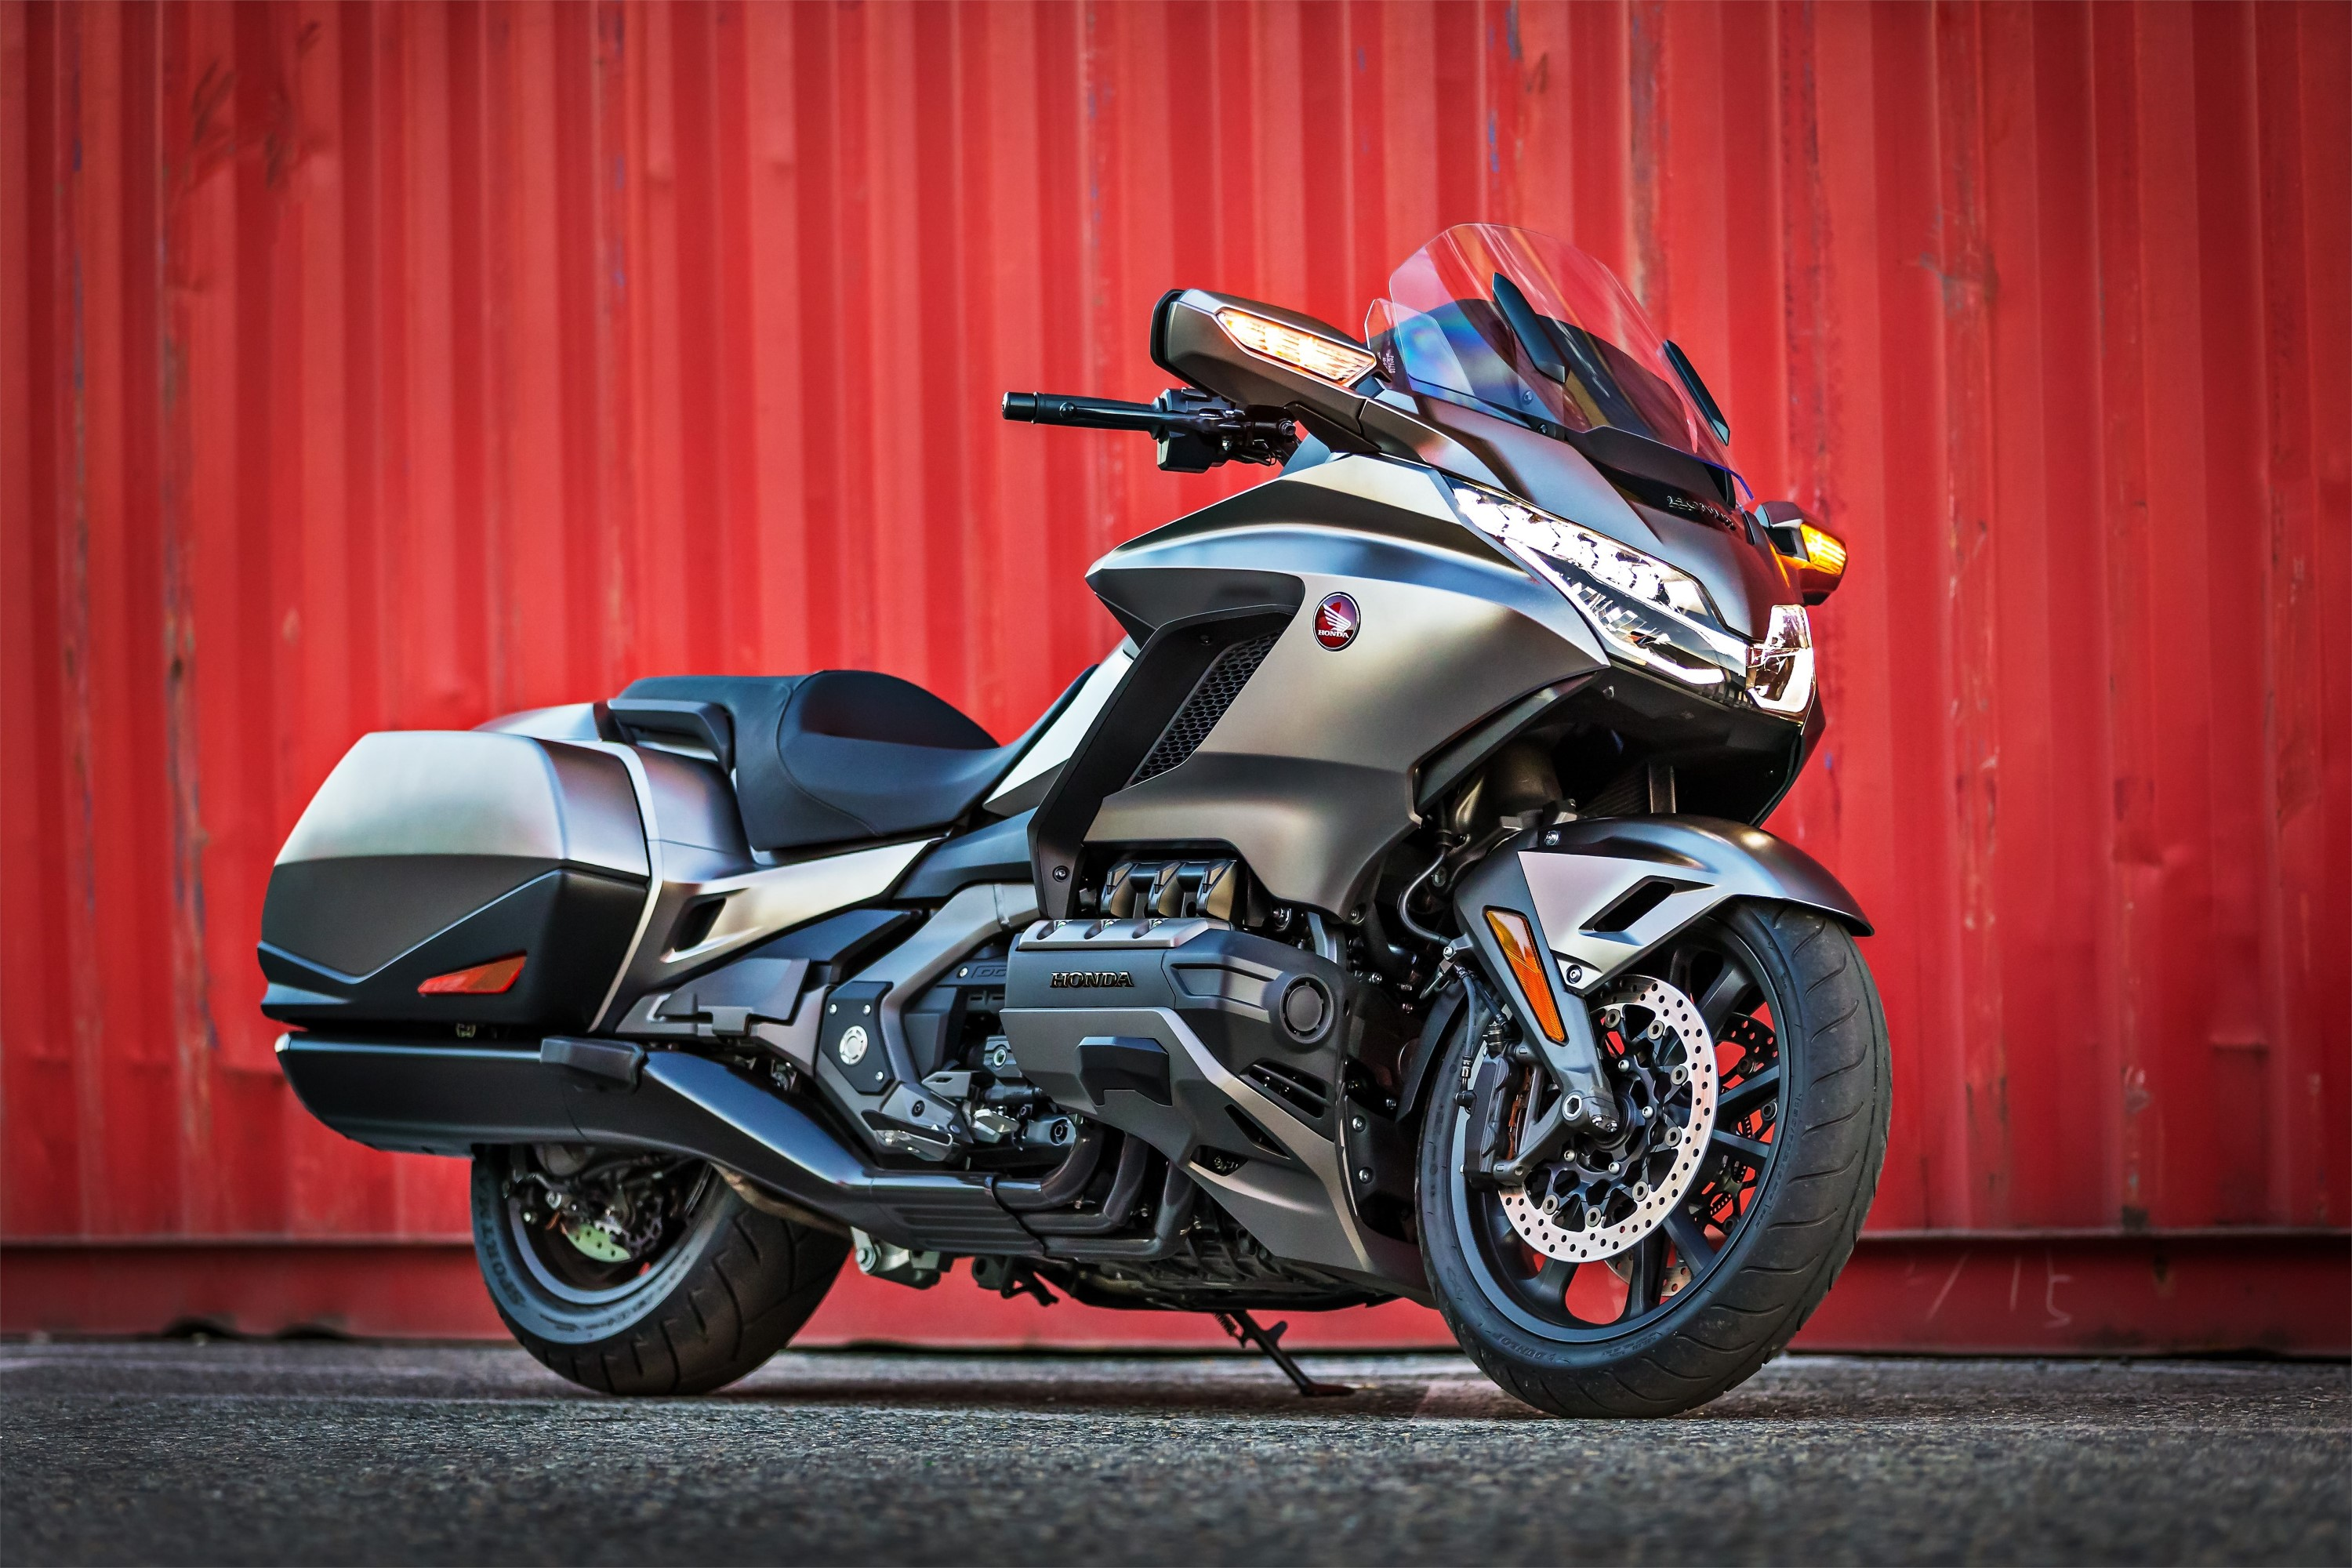 New Honda Gold Wing Gl1100 Wiring Diagram Electrical Library Of A 1980 Goldwing Images 2018 In The Details Pictures Photos Download